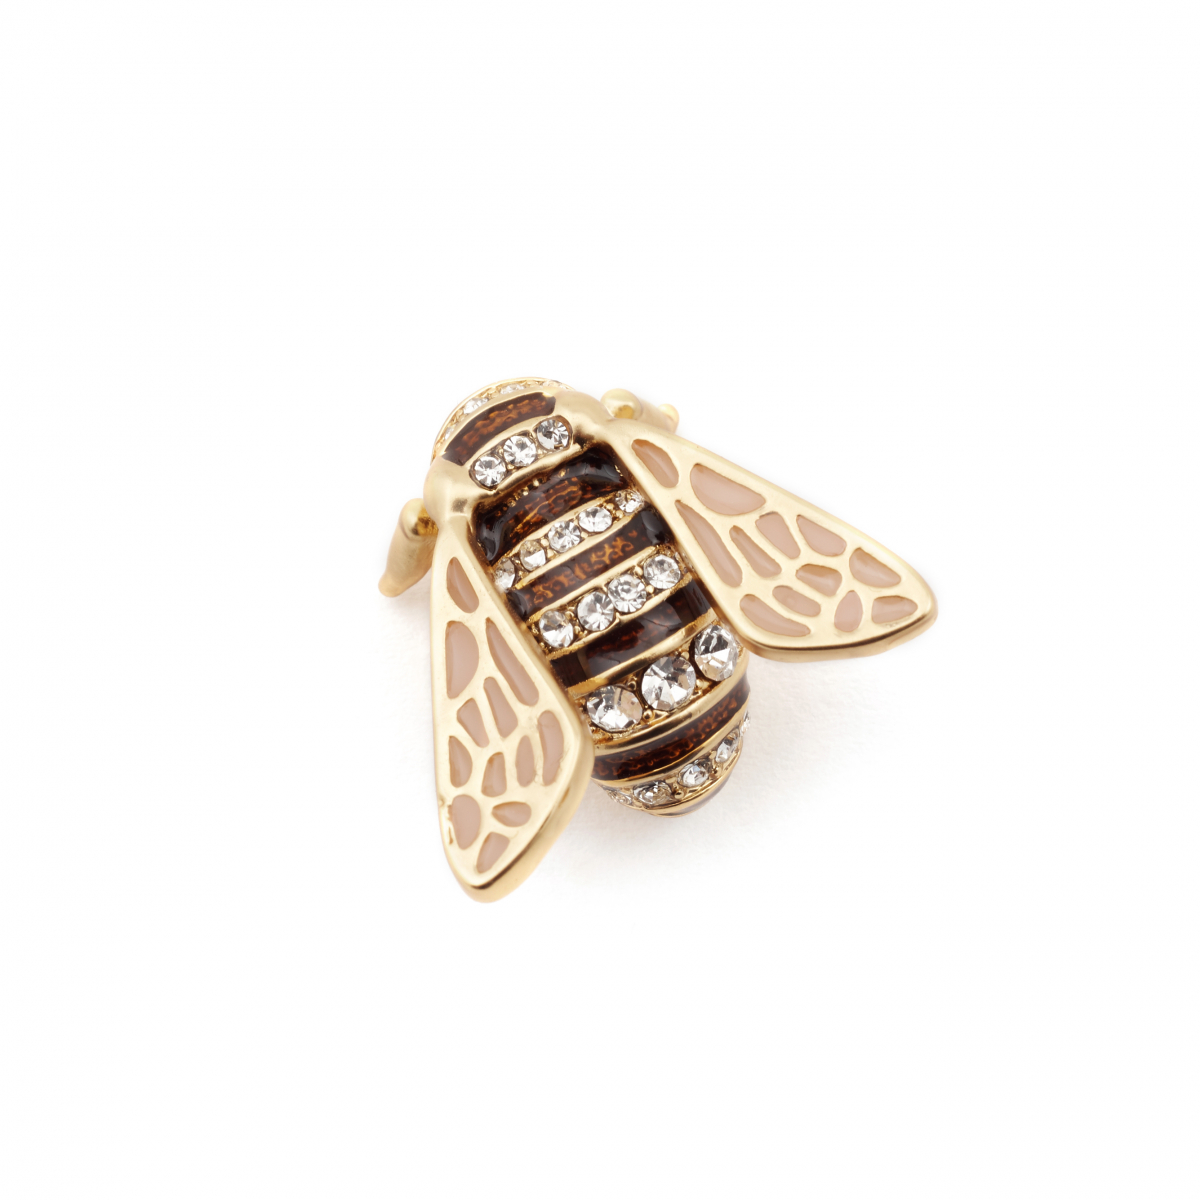 Adorned Queen Bee Pin Brooch